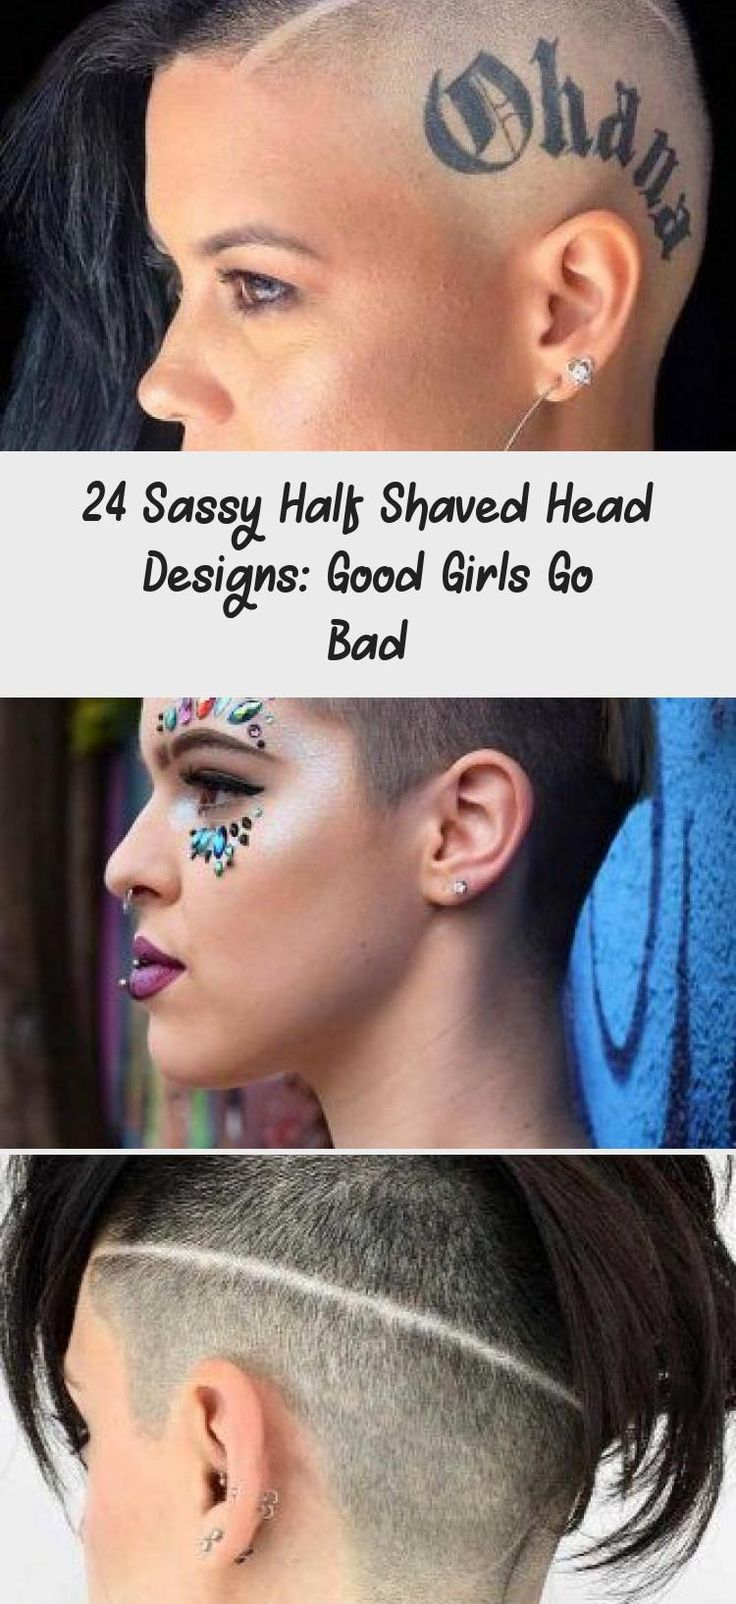 Half Shaved Head Long Waves #halfshavedhead #hairstyles #undercut ❤ Half shaved head hairstyles are designed to ruin stereotypes and let your imagination run wild. If you want to add a dramatic twist to your look while still looking pretty feminine, dive in. Awesome designs for short hair, long ideas to pair with an un